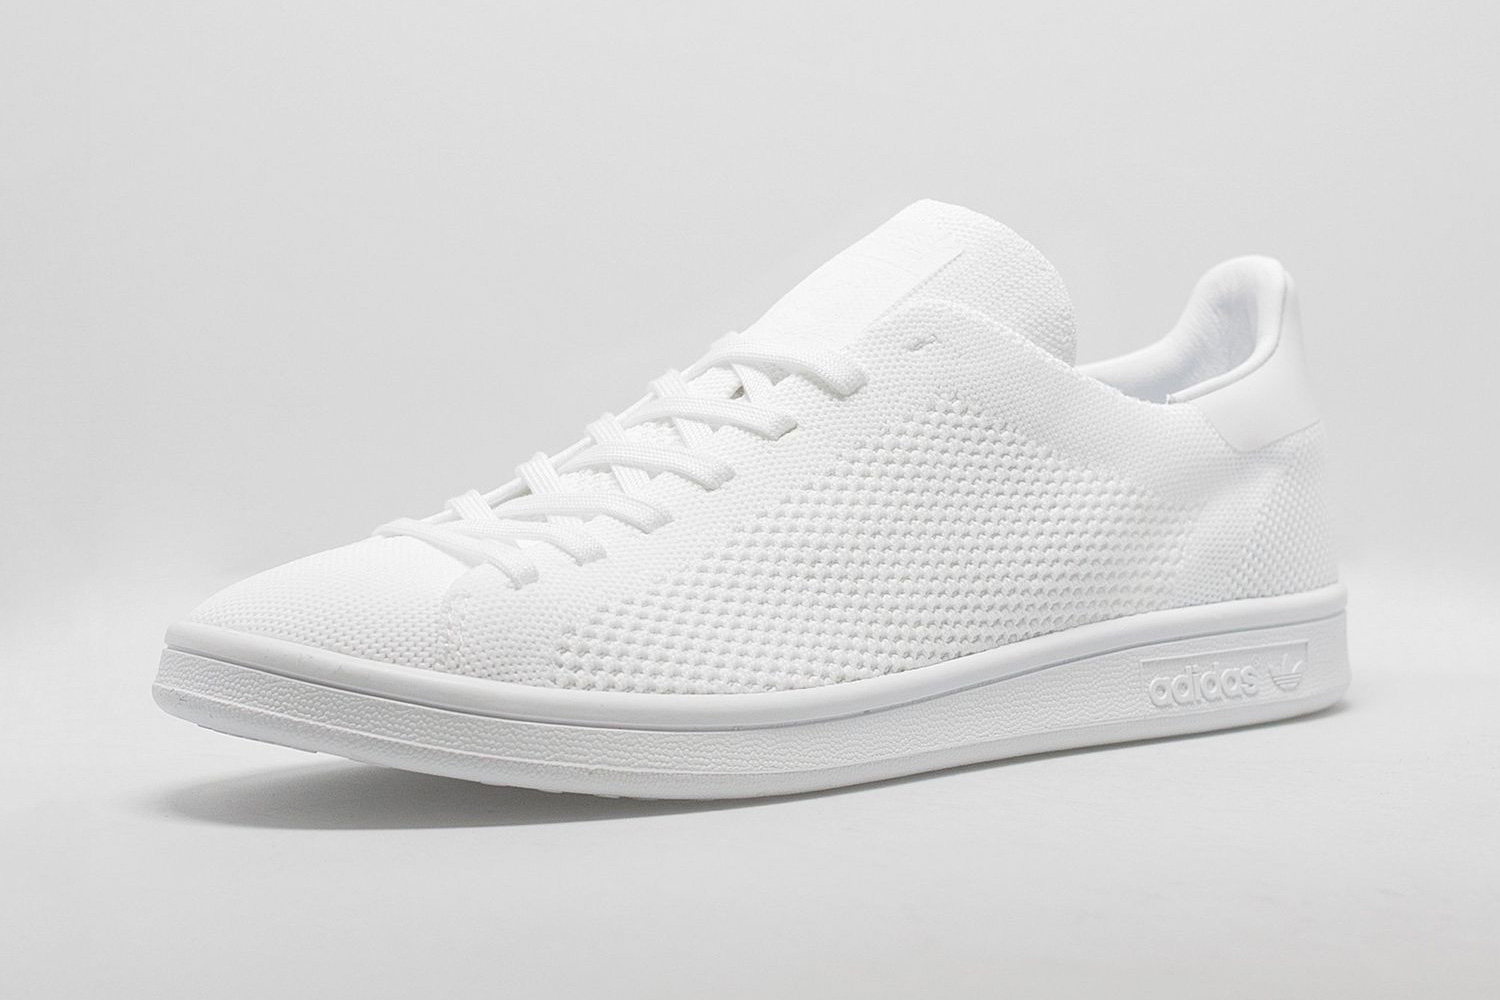 adidas stan smith primeknit paris